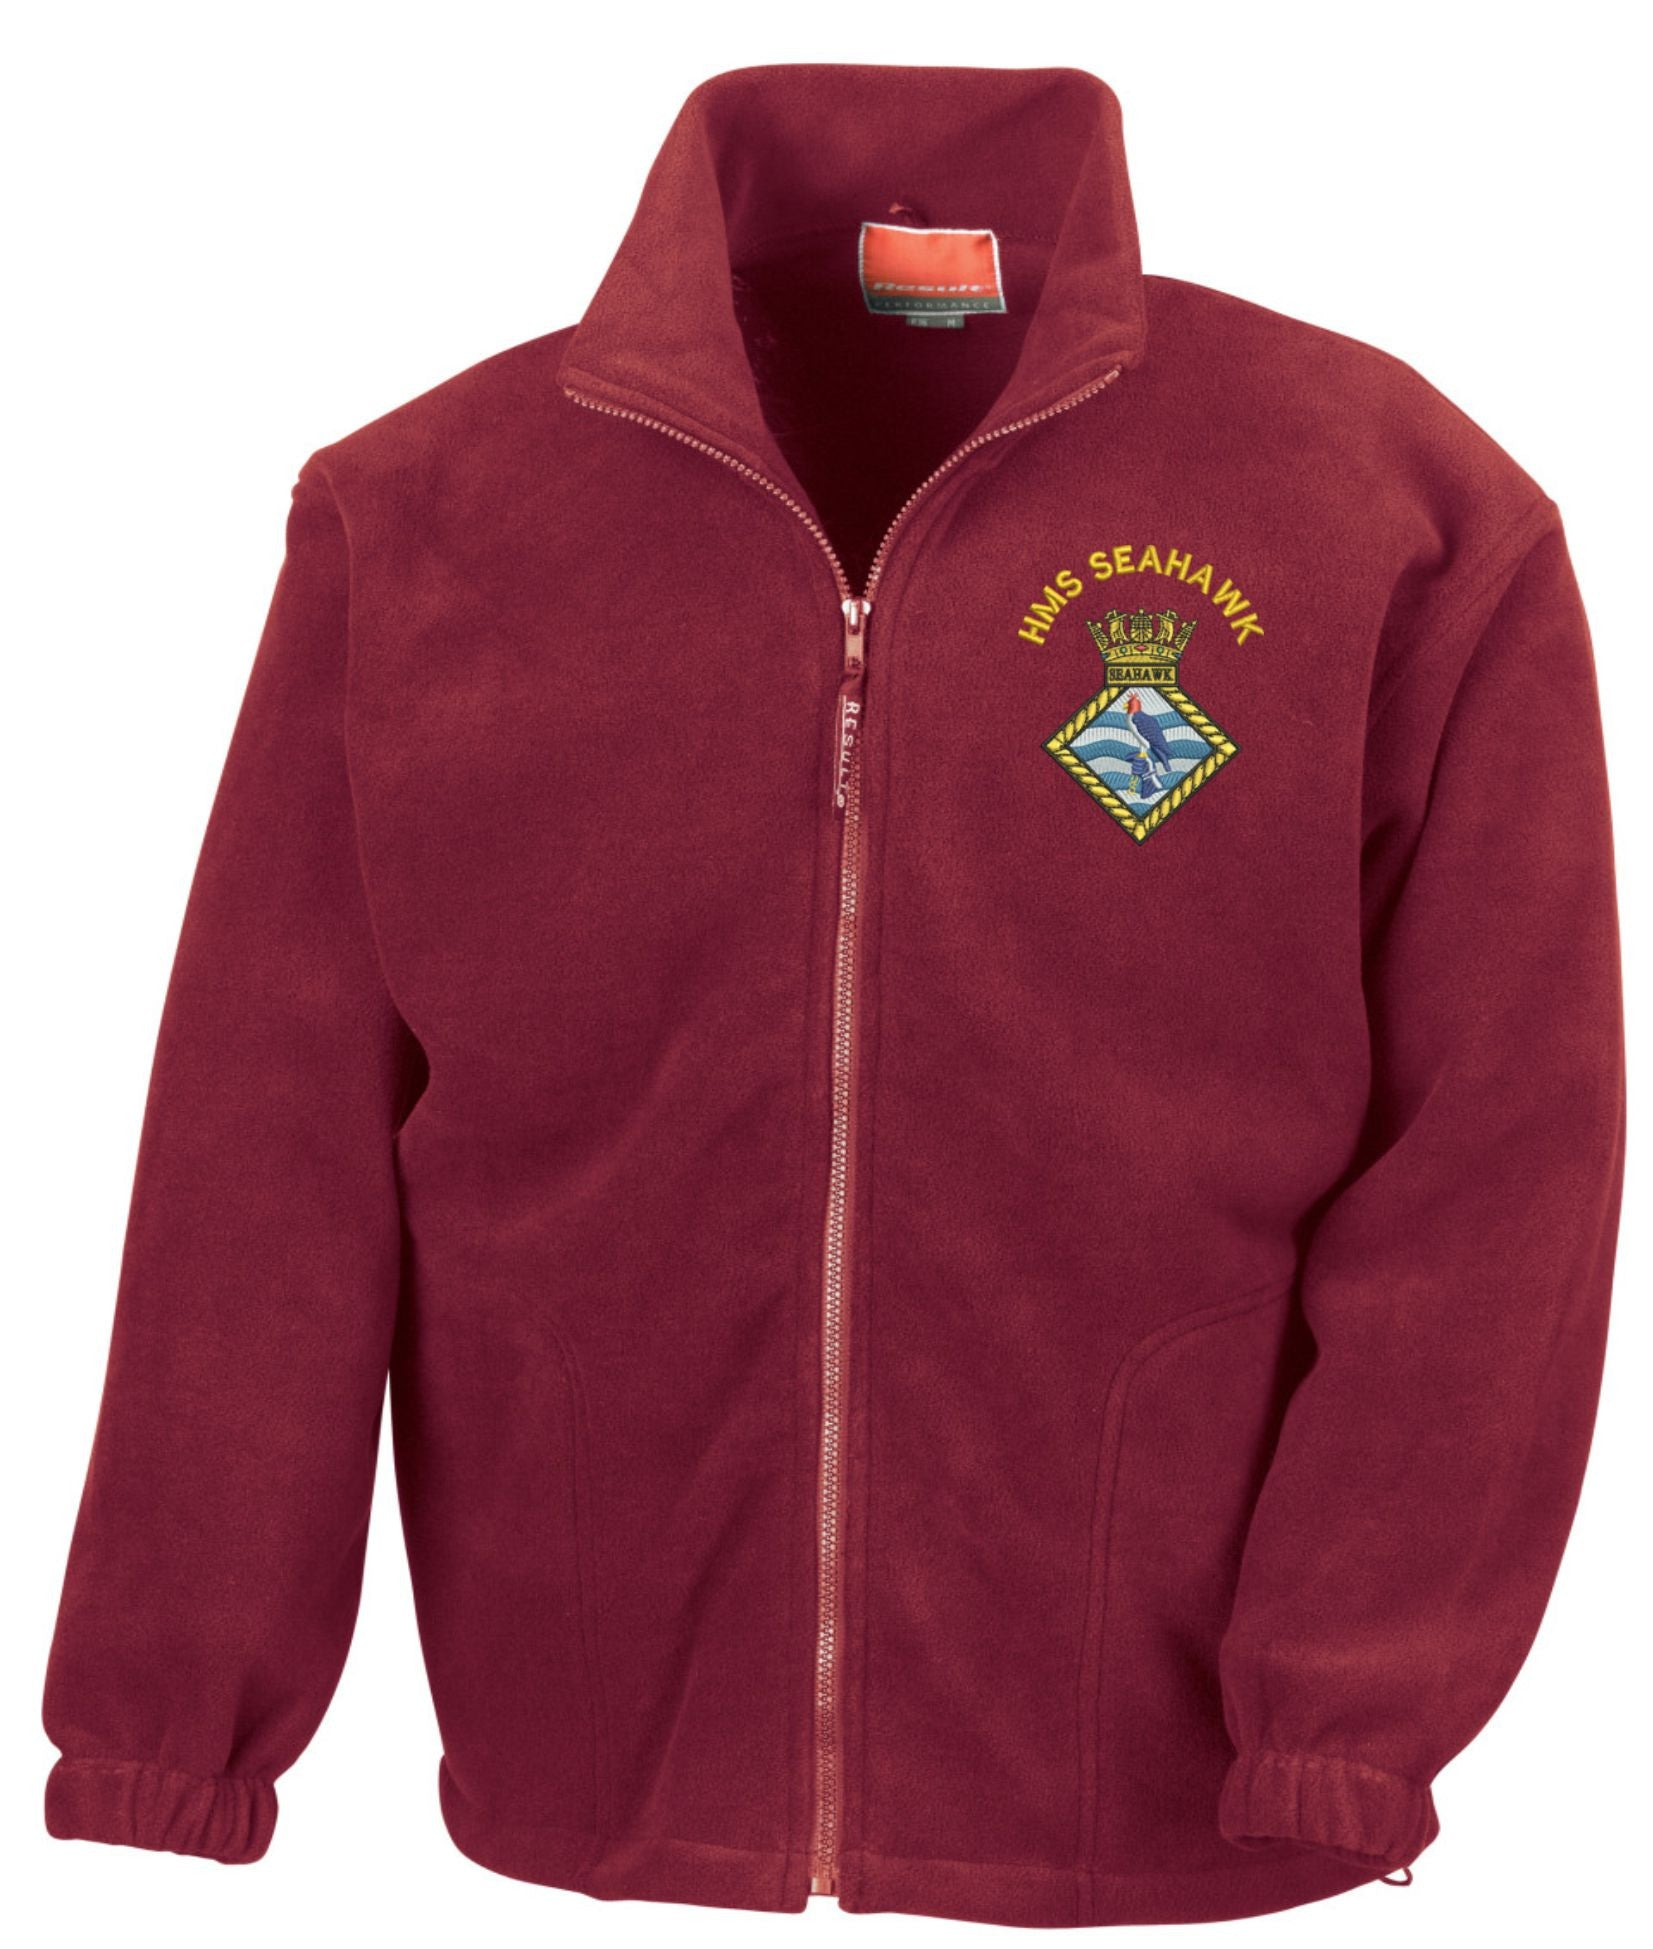 HMS Seahawk Fleece